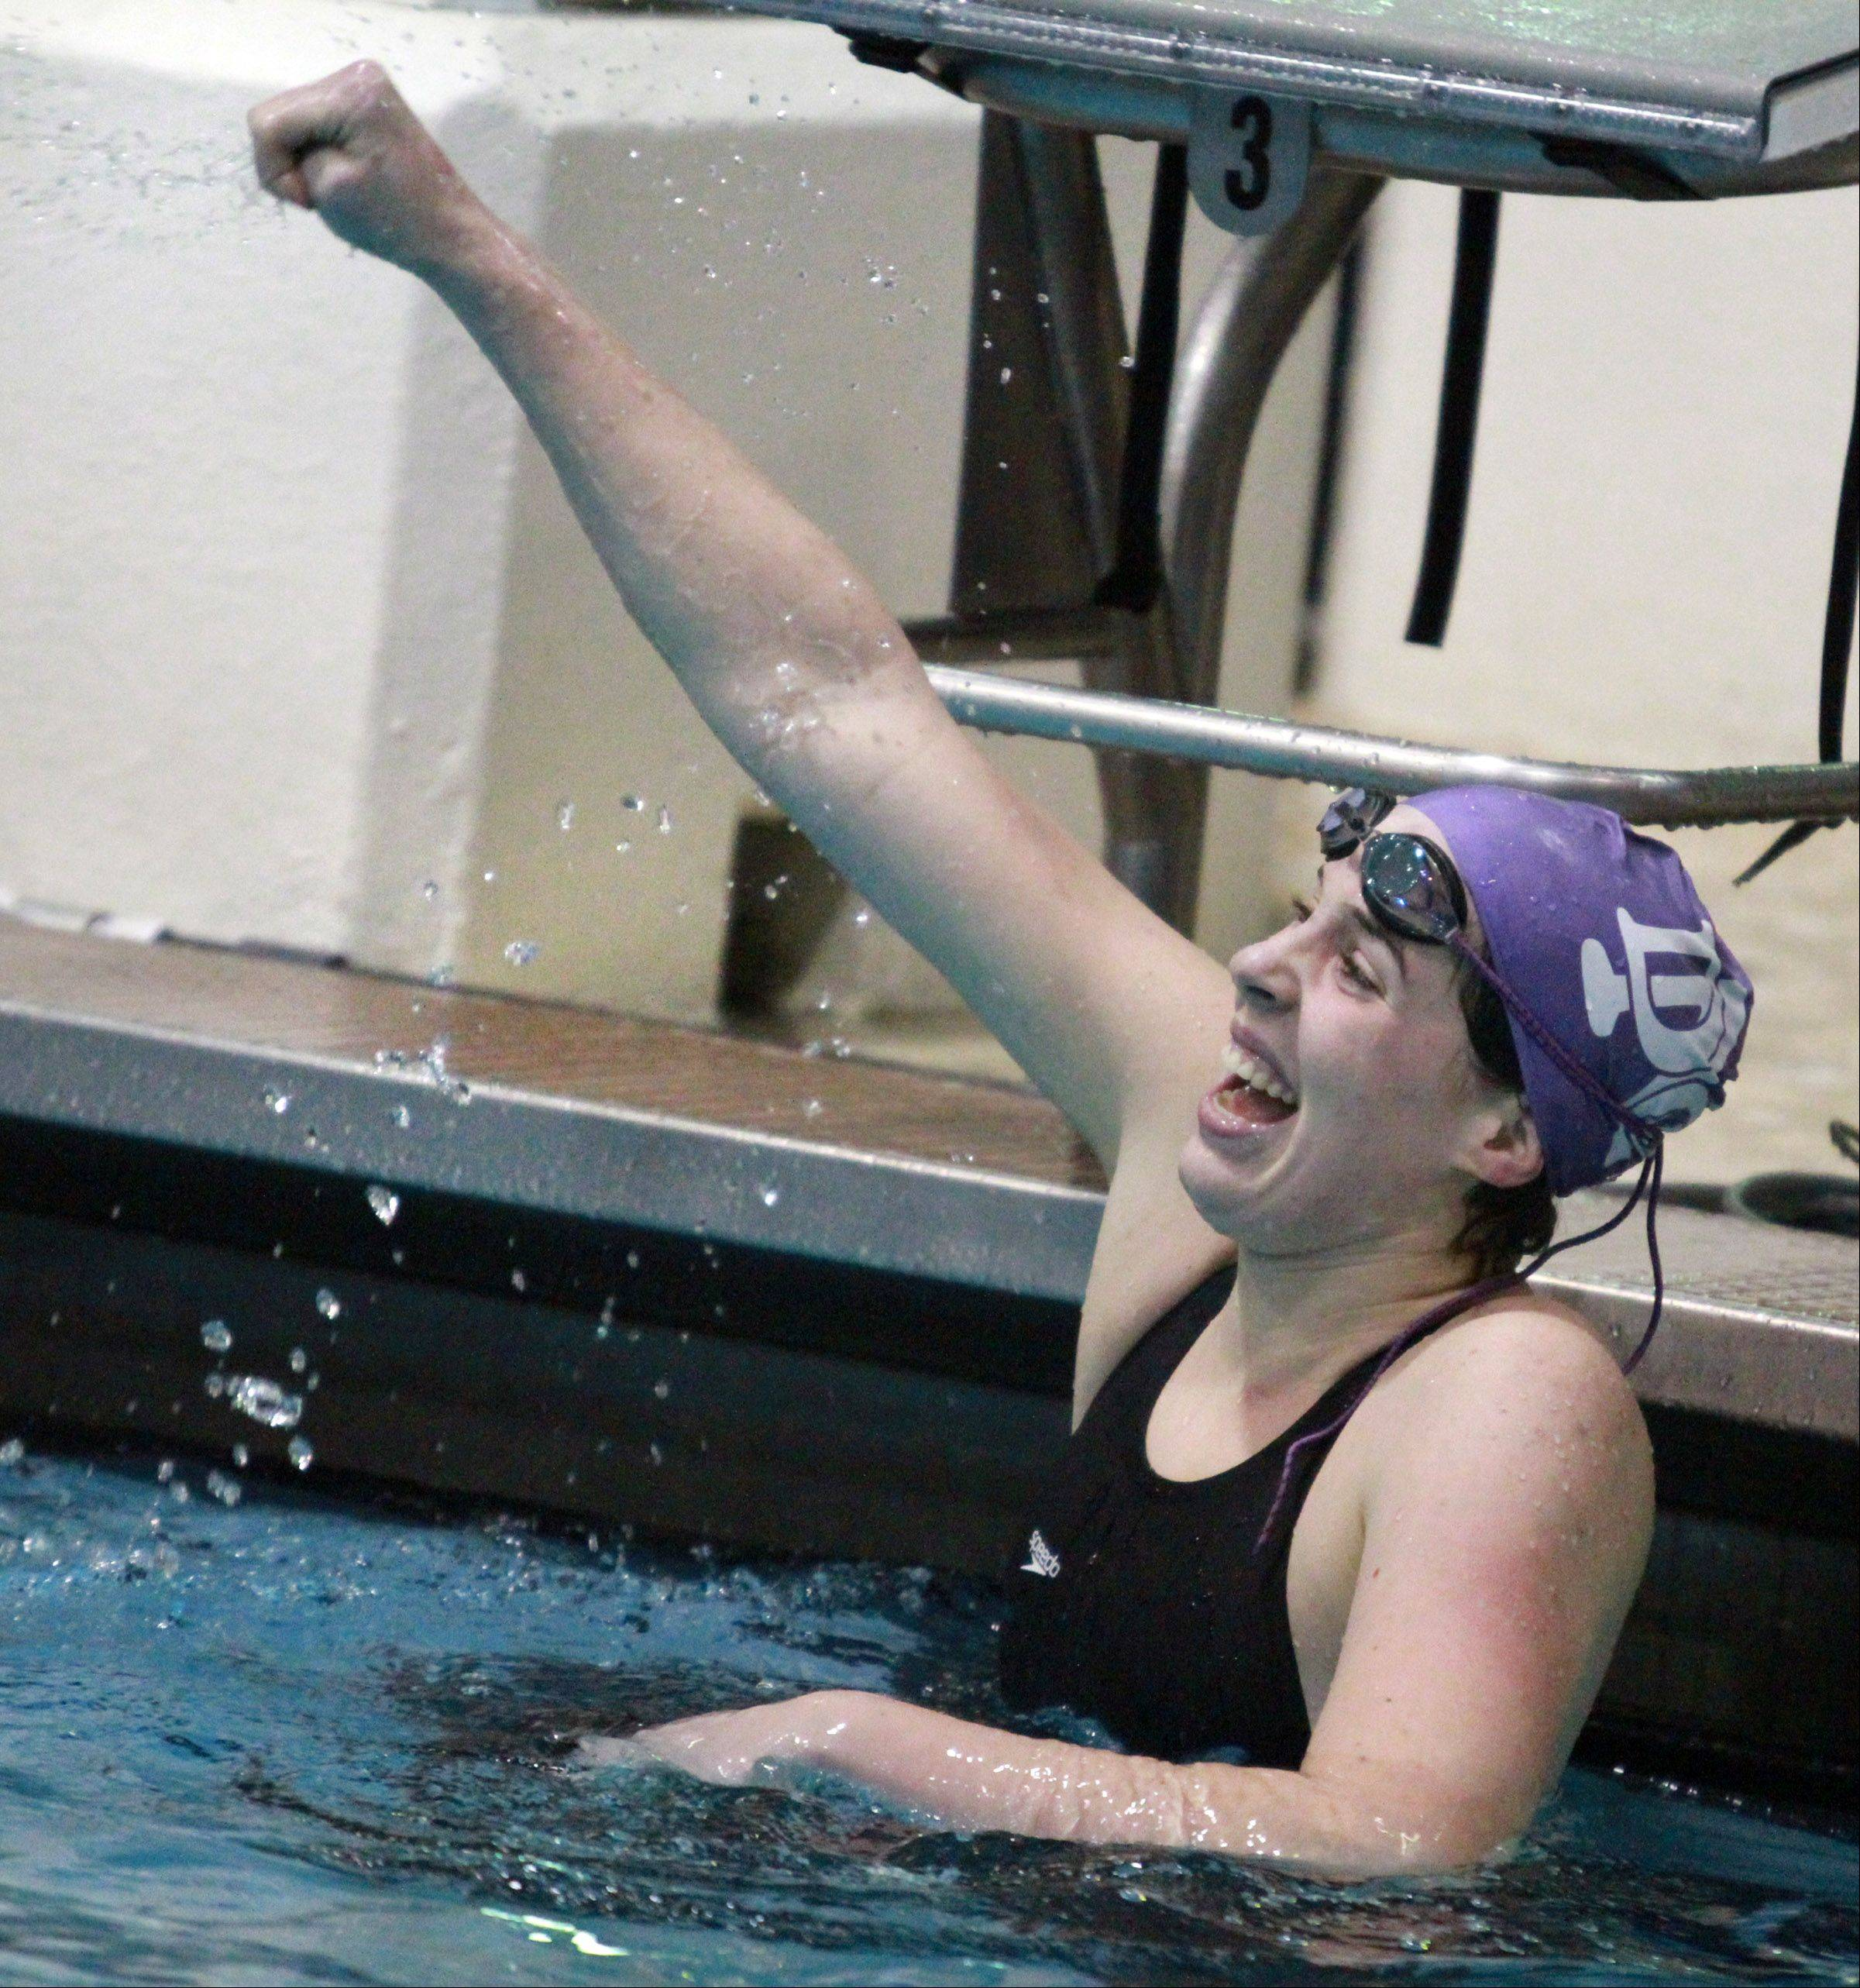 Gabby Sims with Downers Grove North celebrates winning heat 10 and placed first in the 100-yard freestyle at state preliminaries in Evanston on Friday, November 15, 2012.